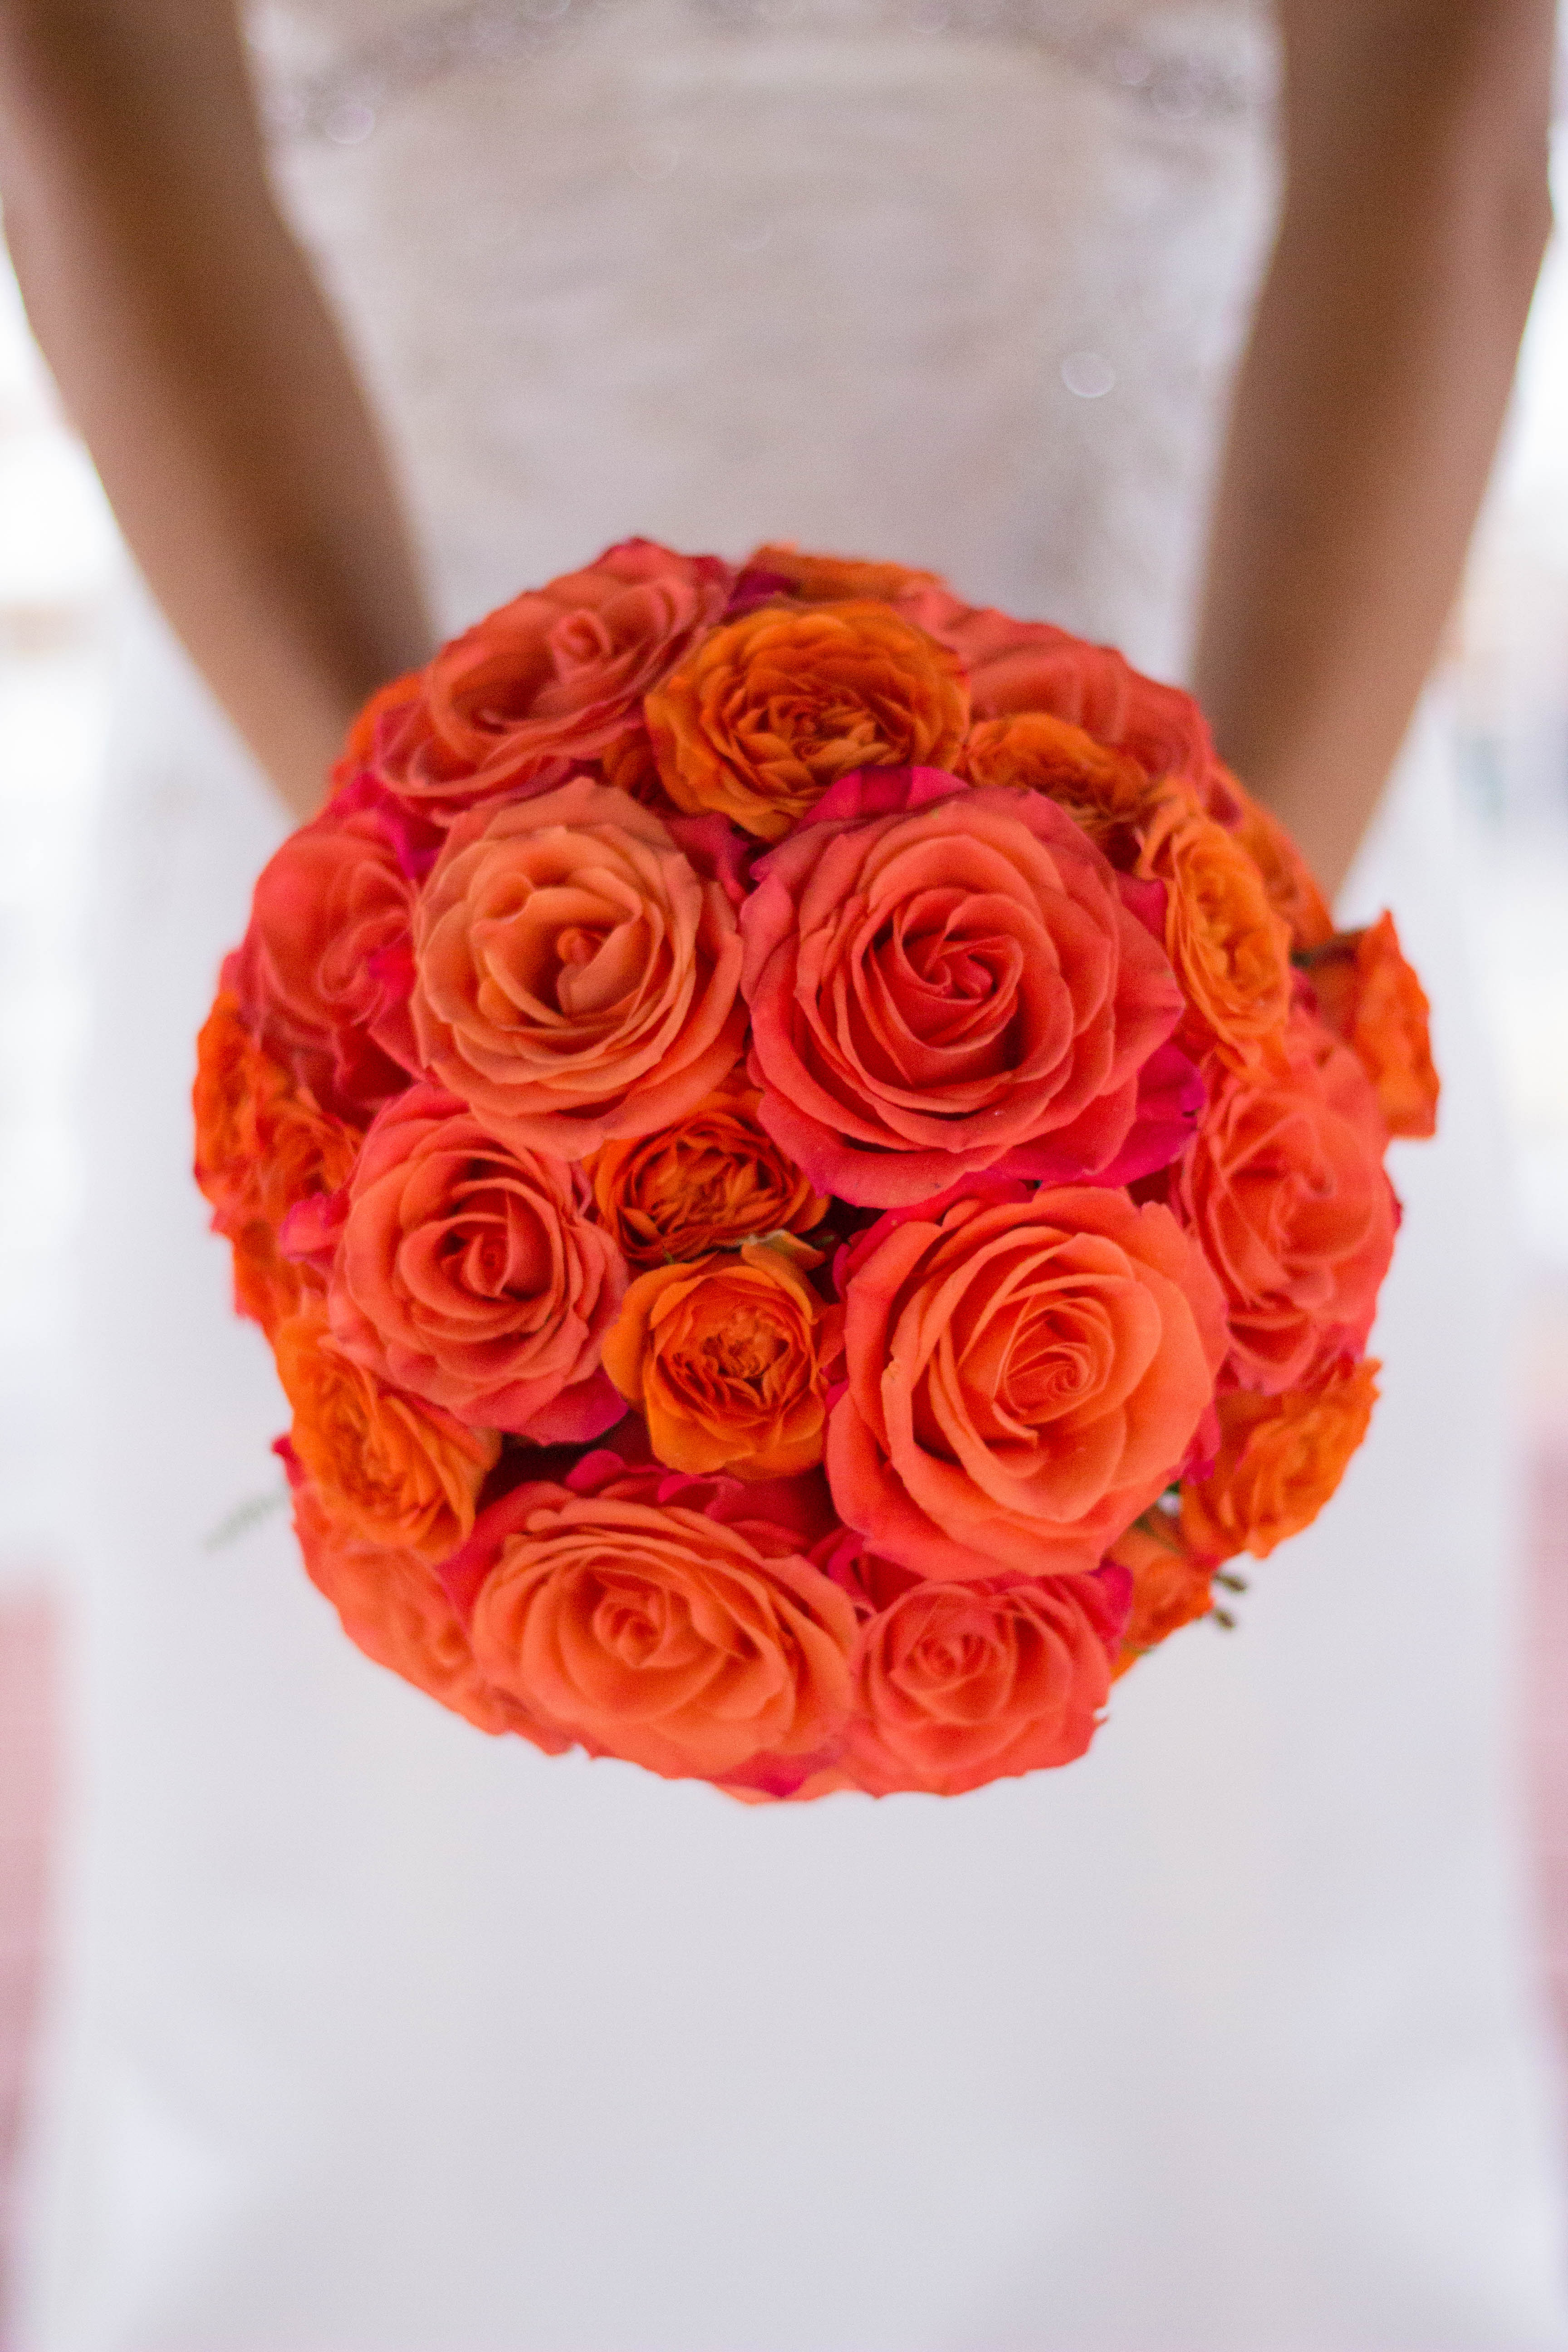 Bridal Bouquet Roses wedding